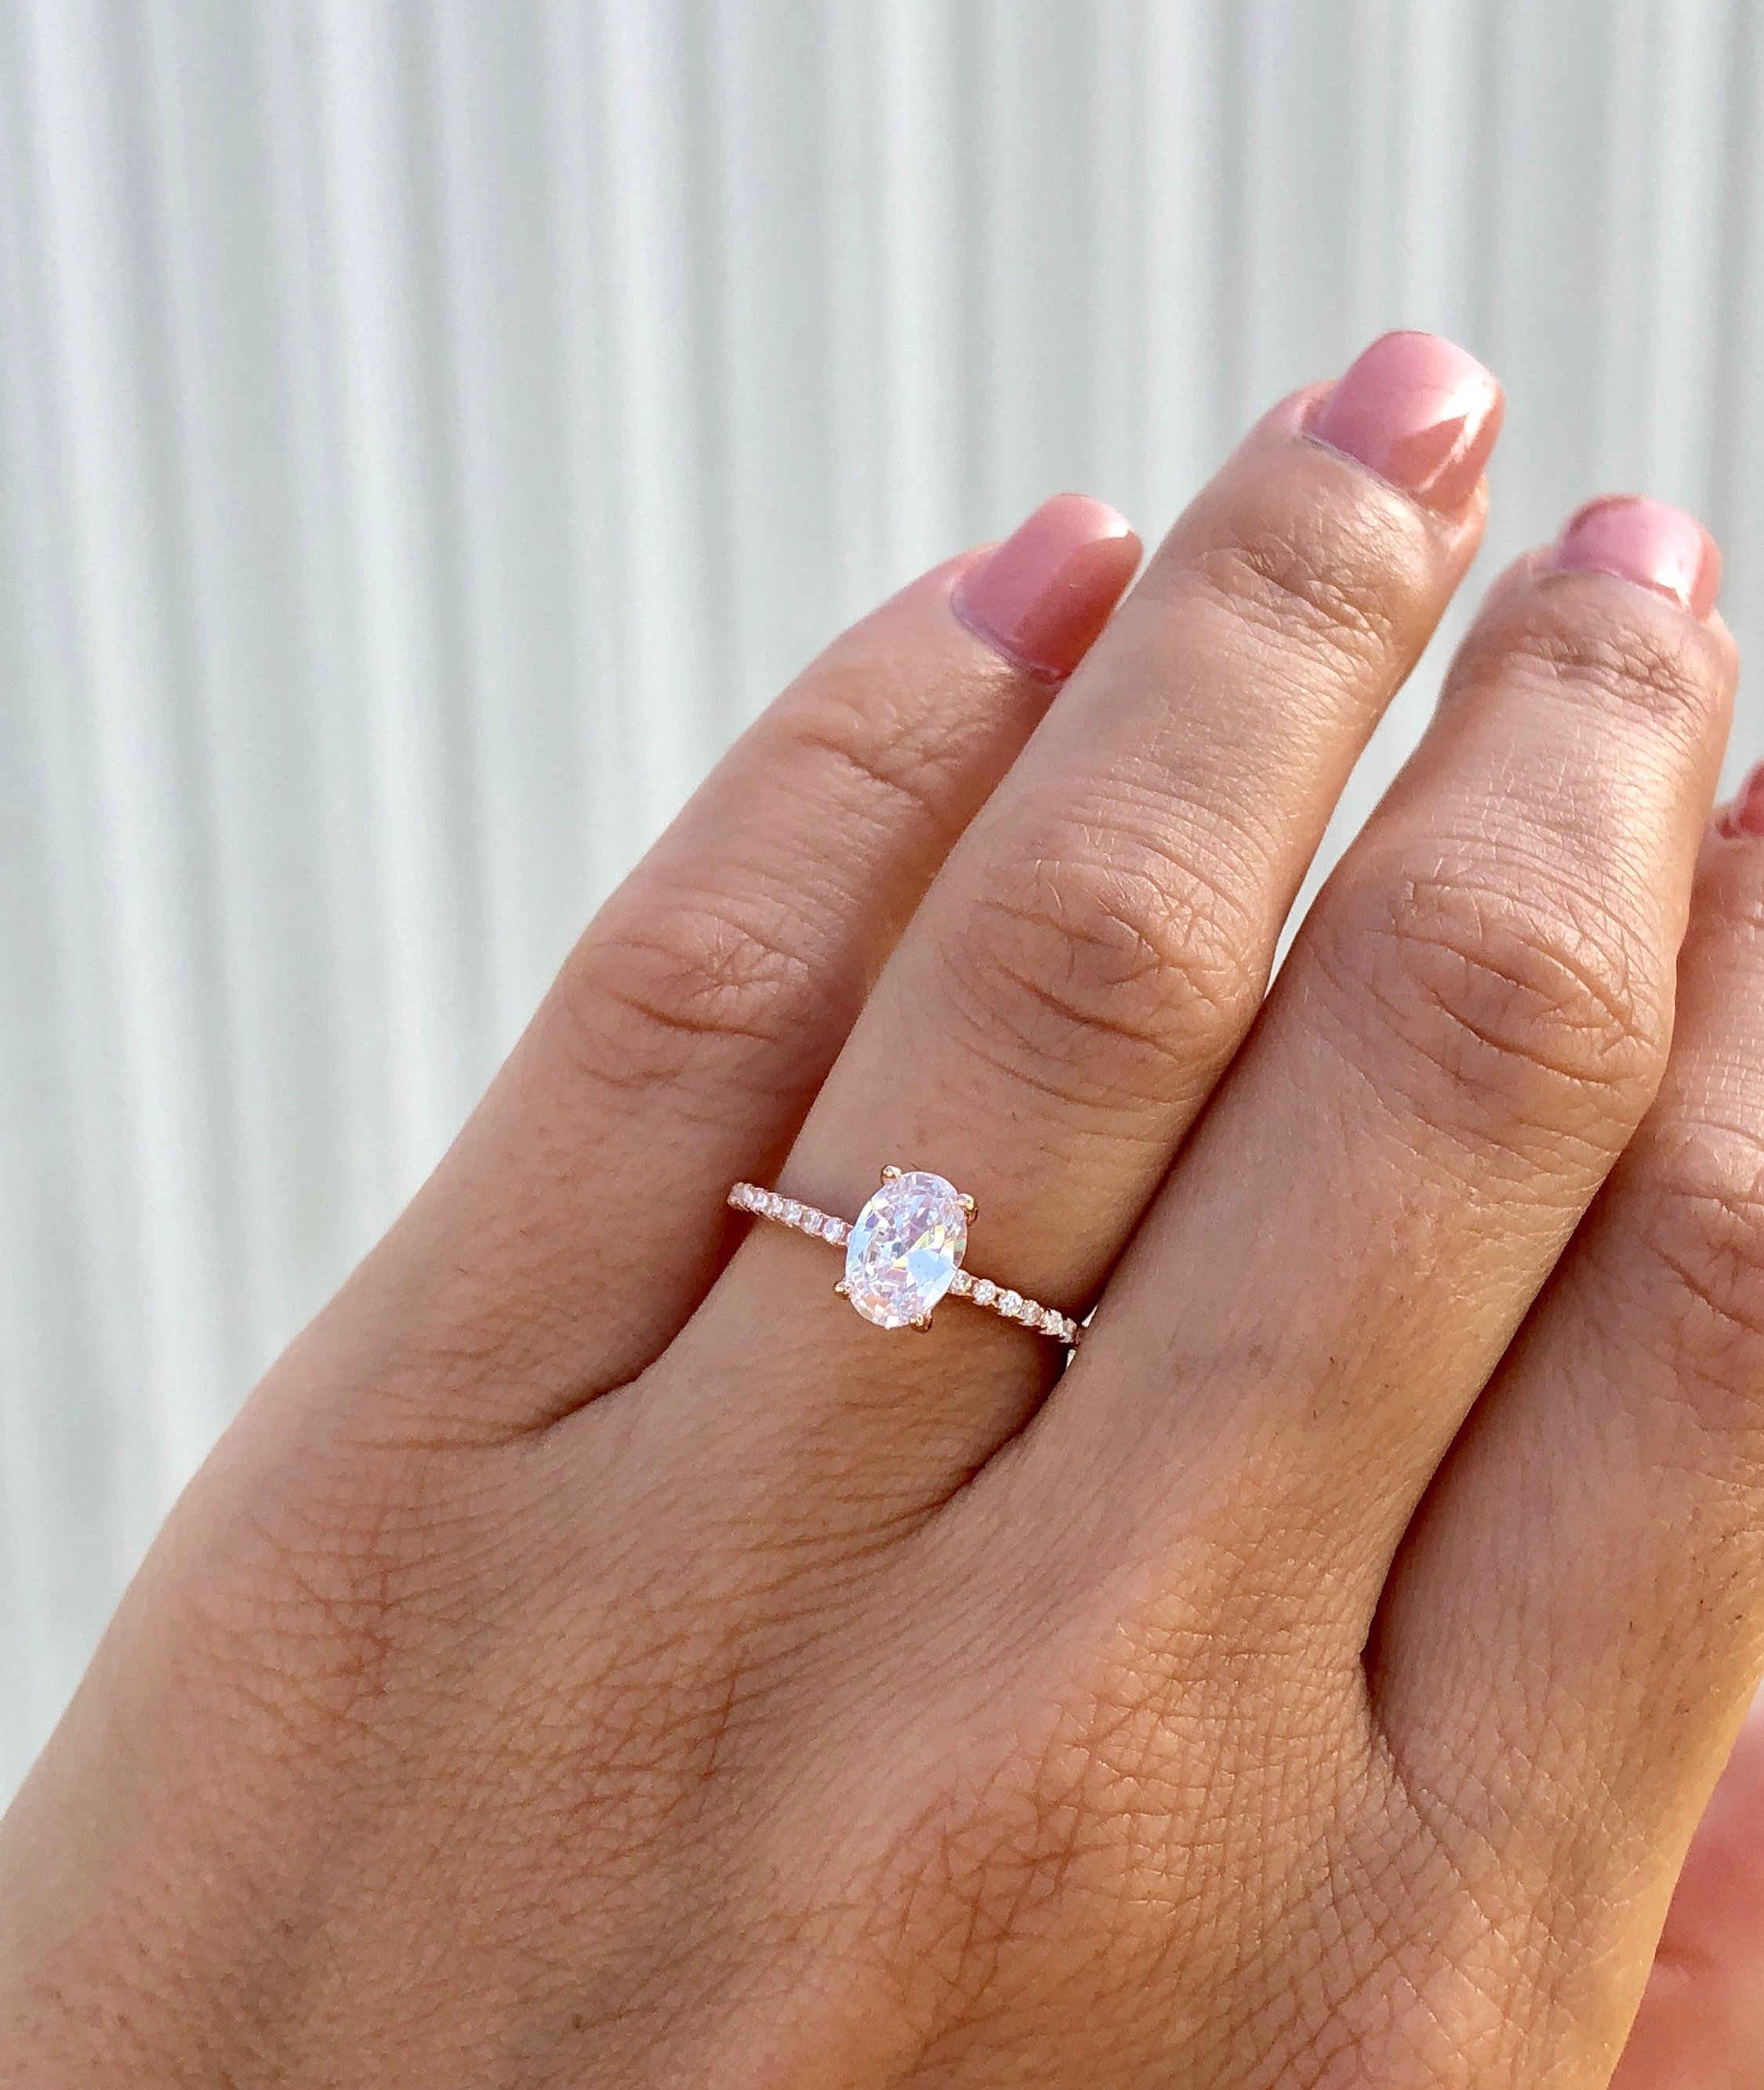 Oval Engagement Ring Throughout Oval Shaped Engagement Rings (View 5 of 25)